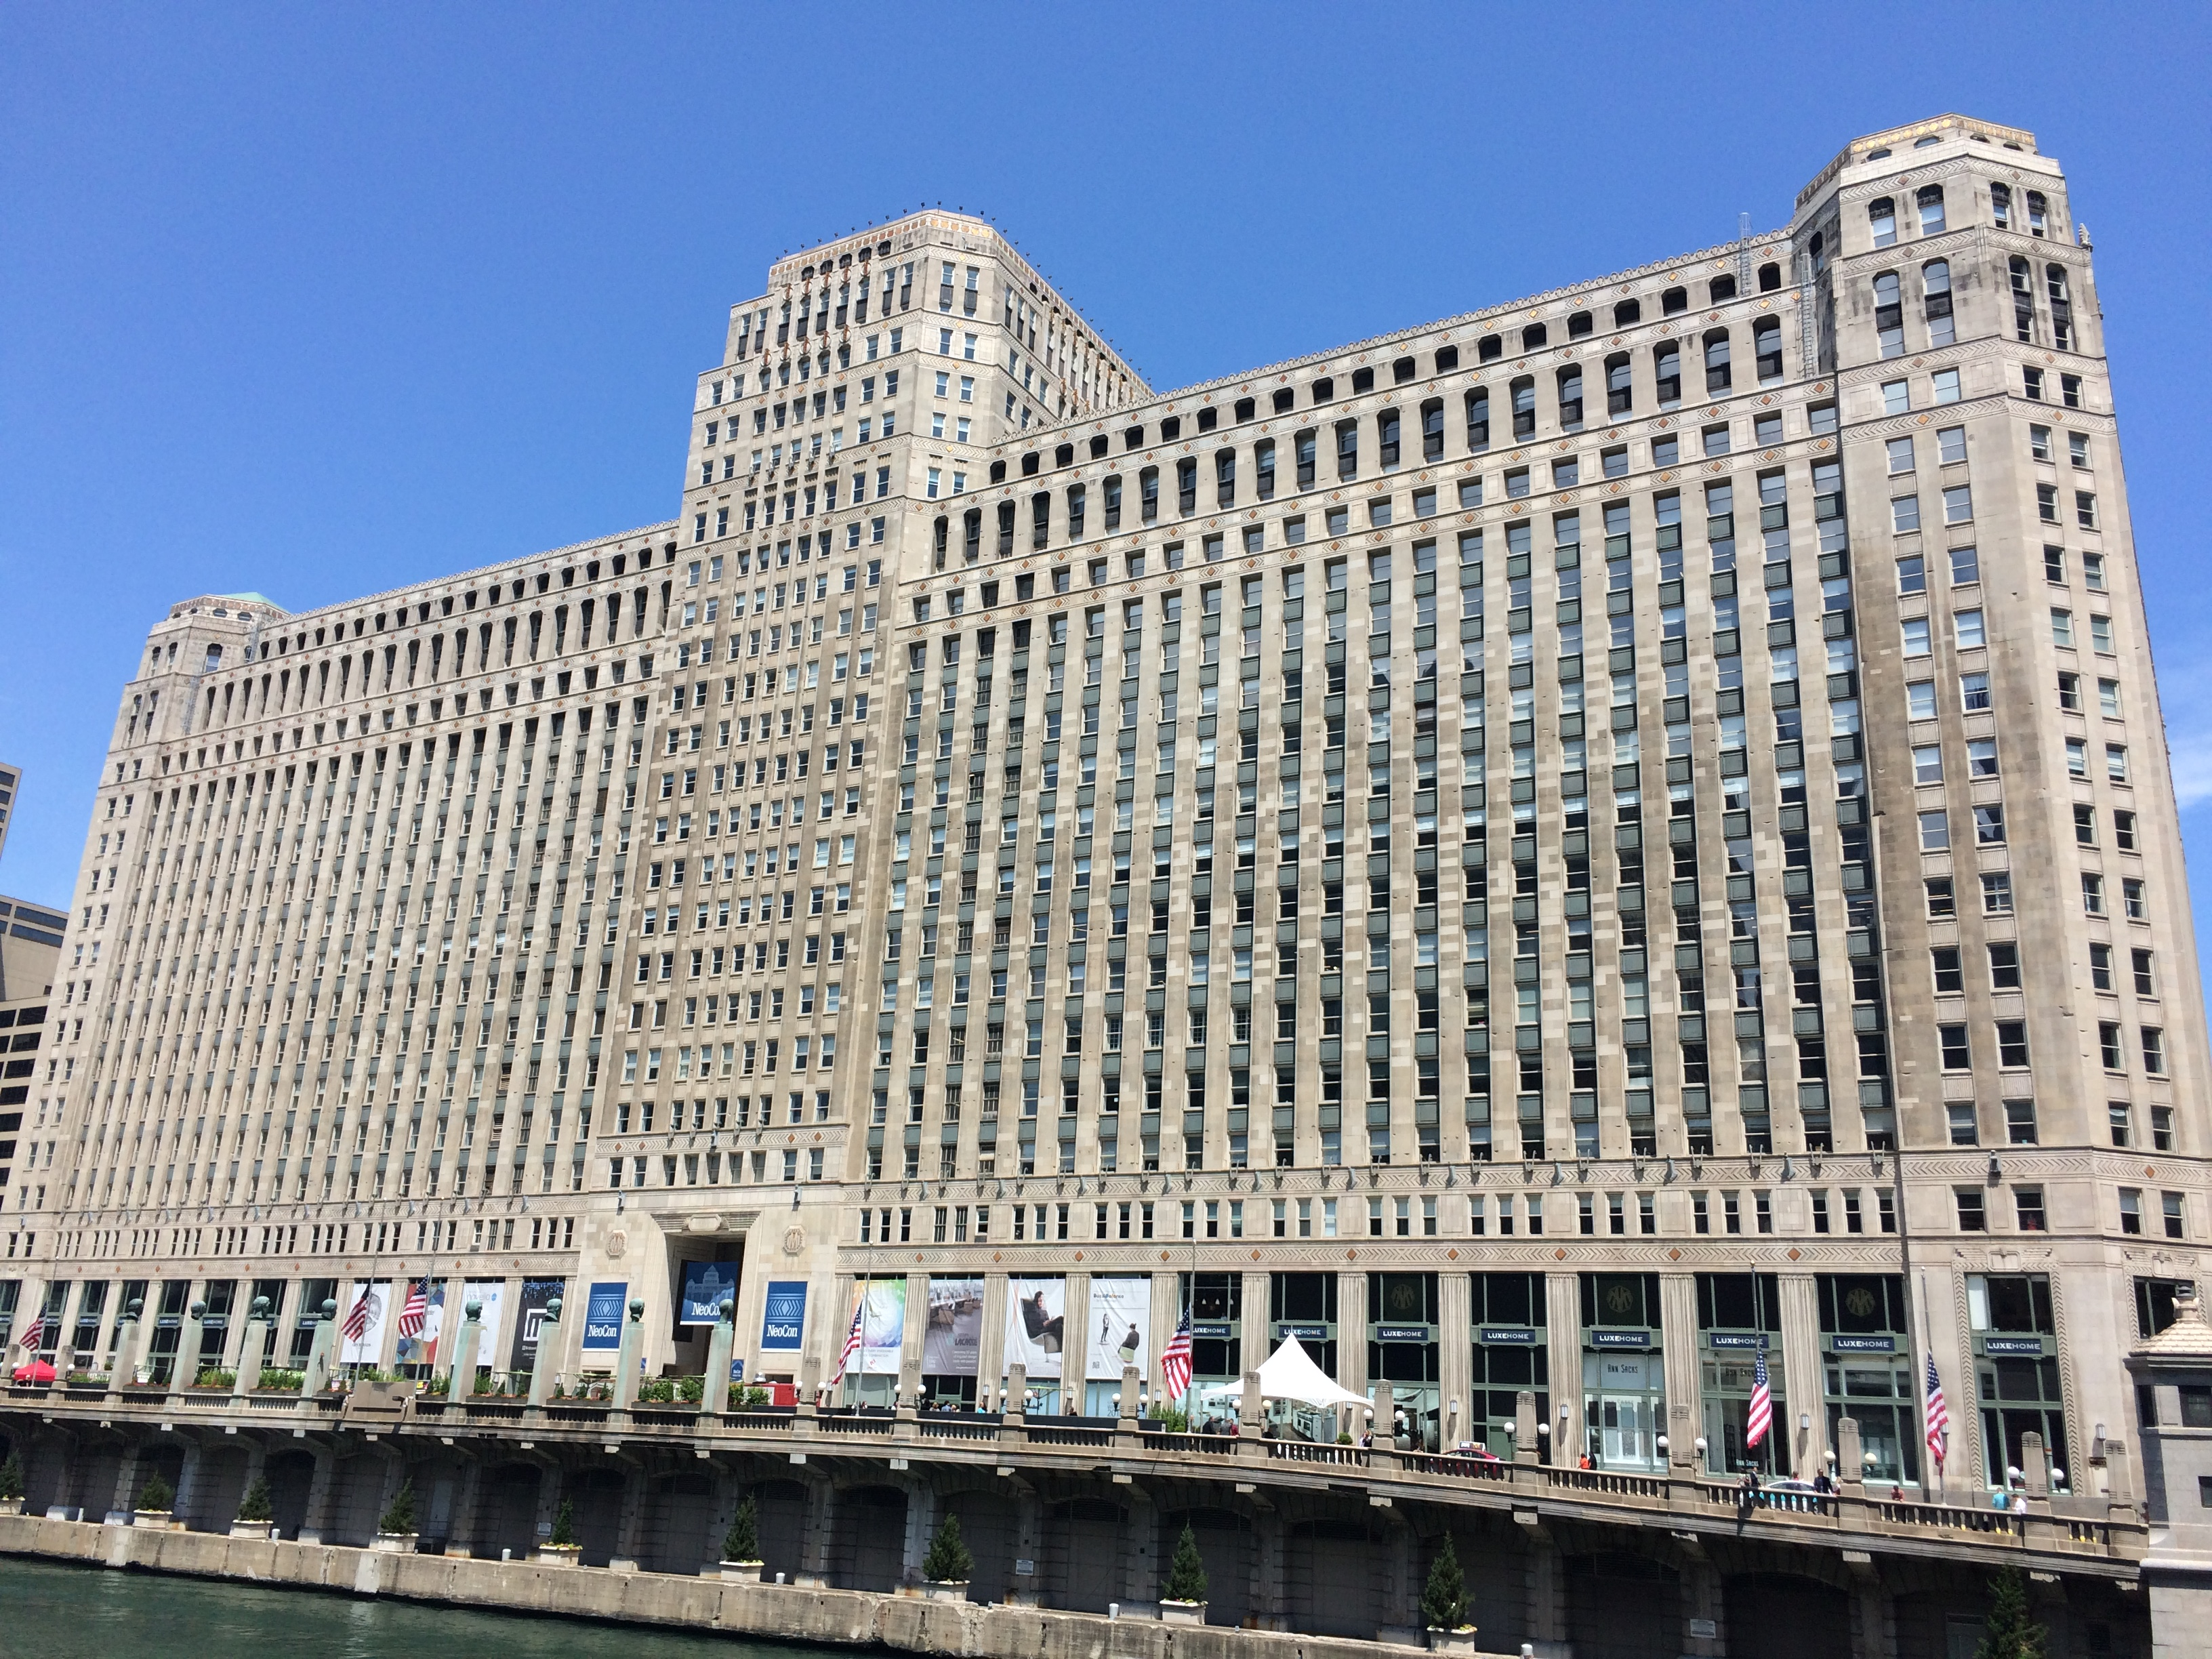 I Just Got Back From NeoCon An Annual Interior Design Conference Held At The Merchandise Mart In Chicago And Im Still Unwinding